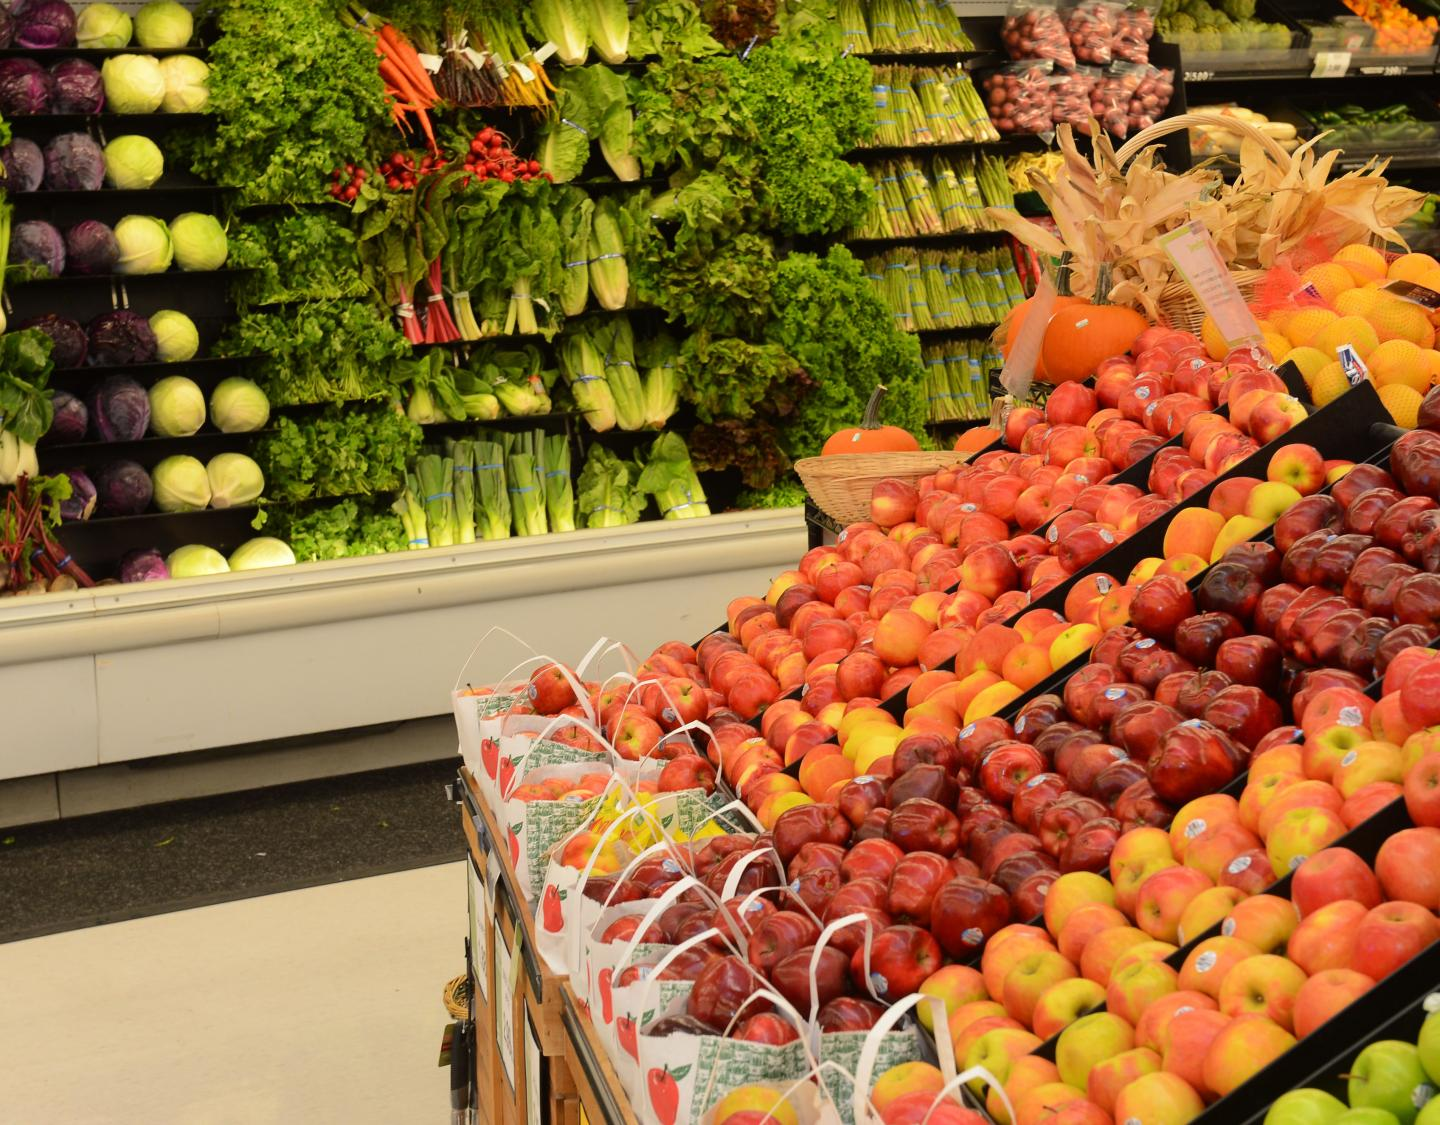 Produce Aisle of Grocery Store